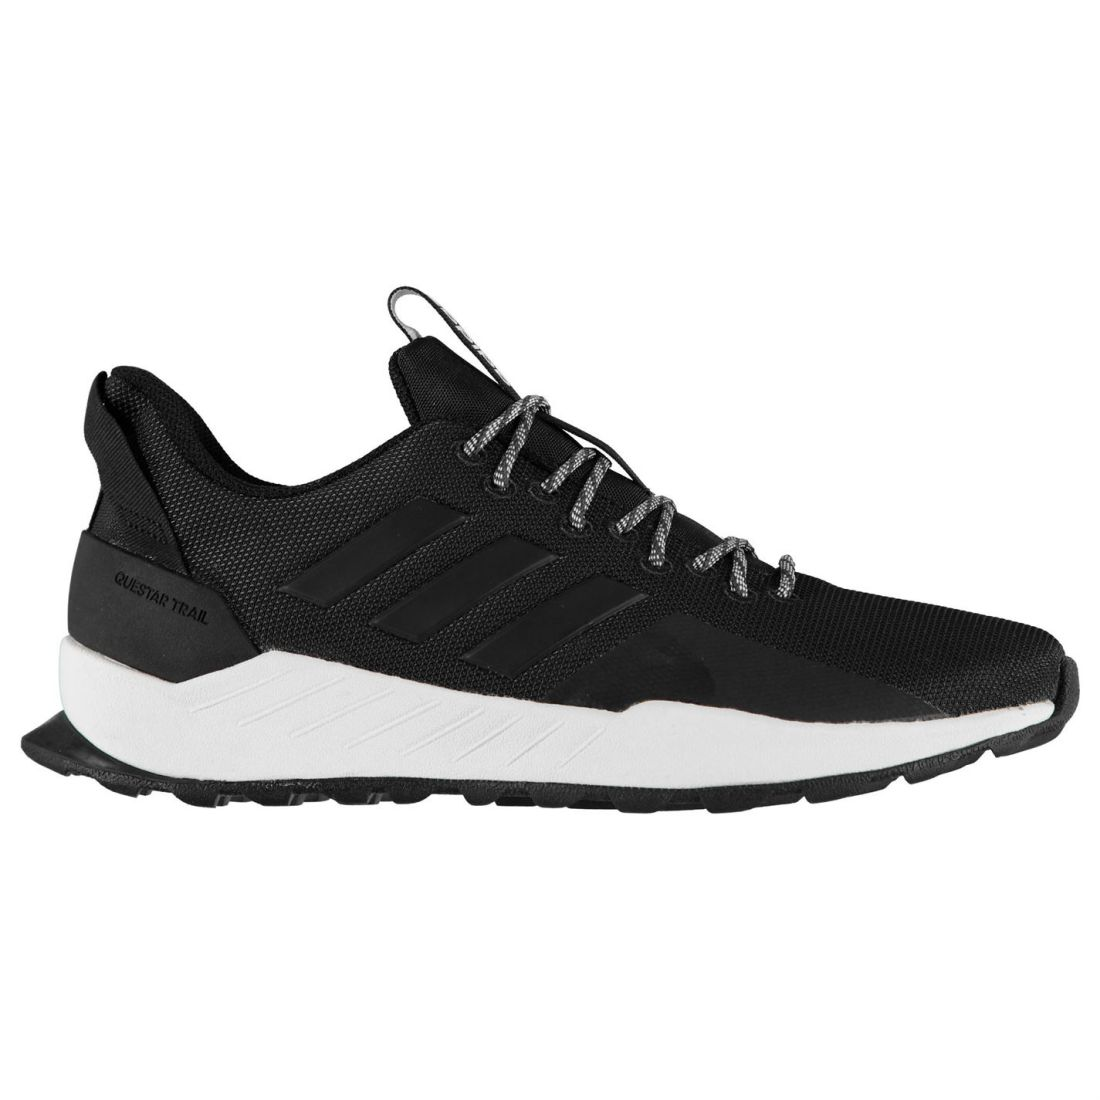 5fad73b55 Image is loading adidas-Questar-Trail-84-Mens-Gents-Runners